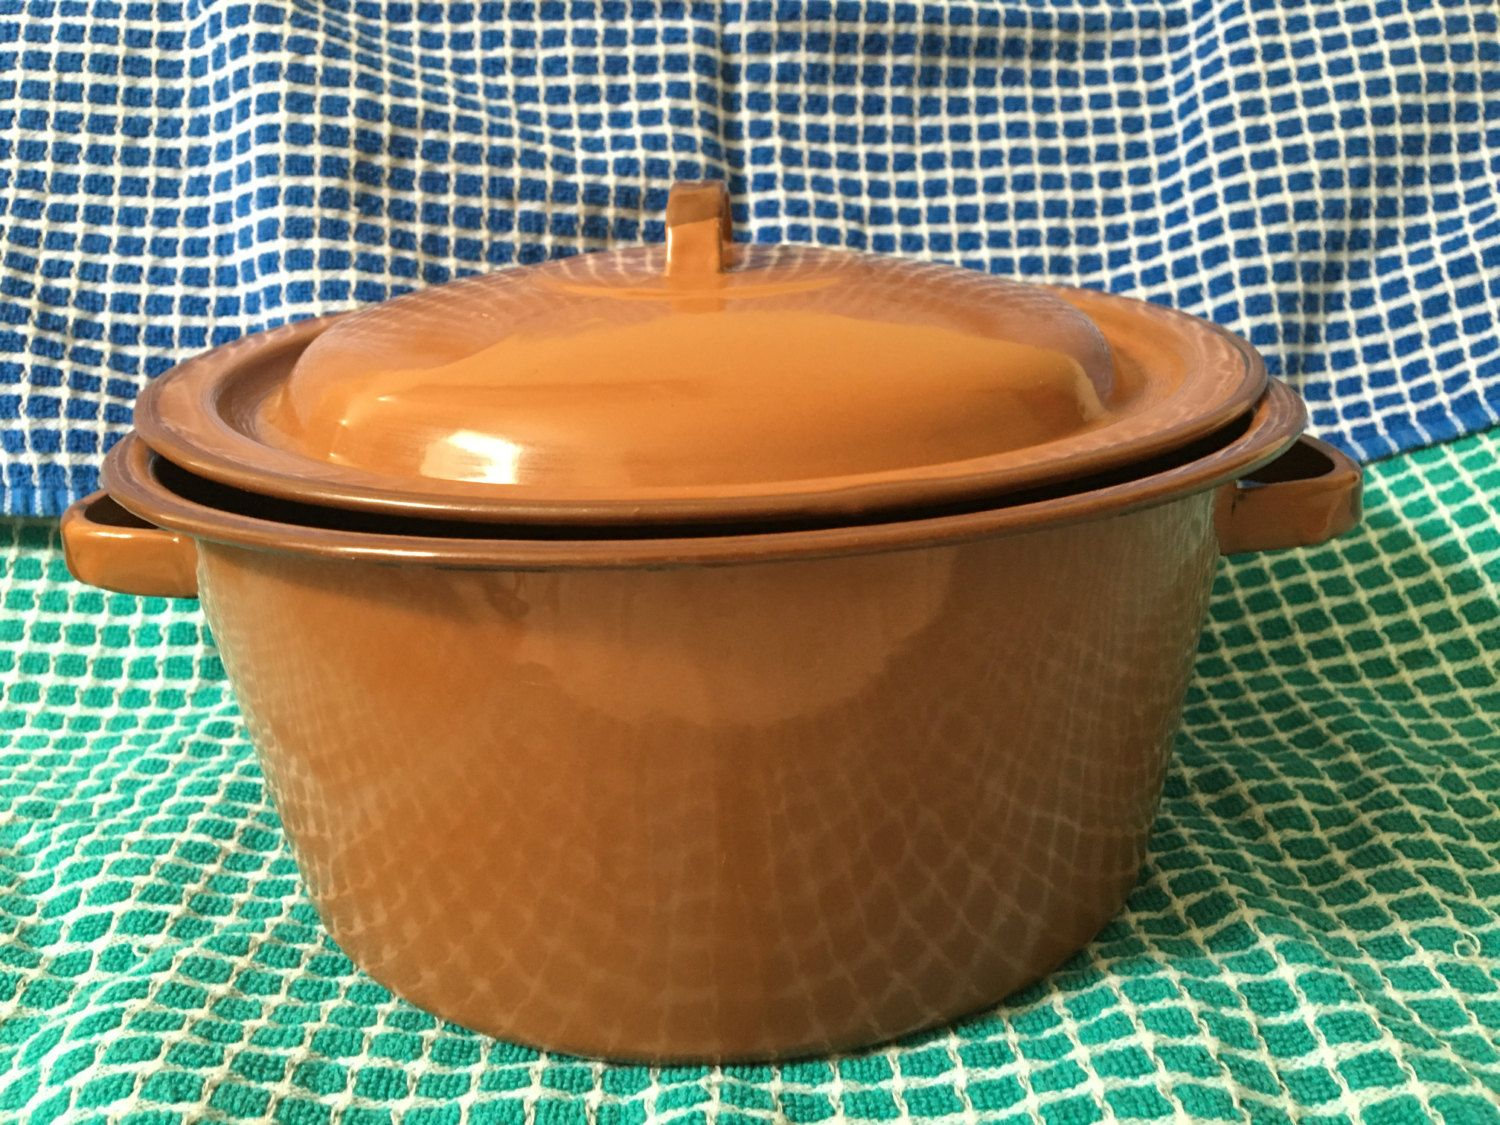 Brown Enamelware Pot With Lid, Darker Brown Rims, Soup Pot, Ornament Graniteware Pot, Housewarm Gift, Wedding,Home Decor, Farmhouse, Antique by Roses4Her on Etsy